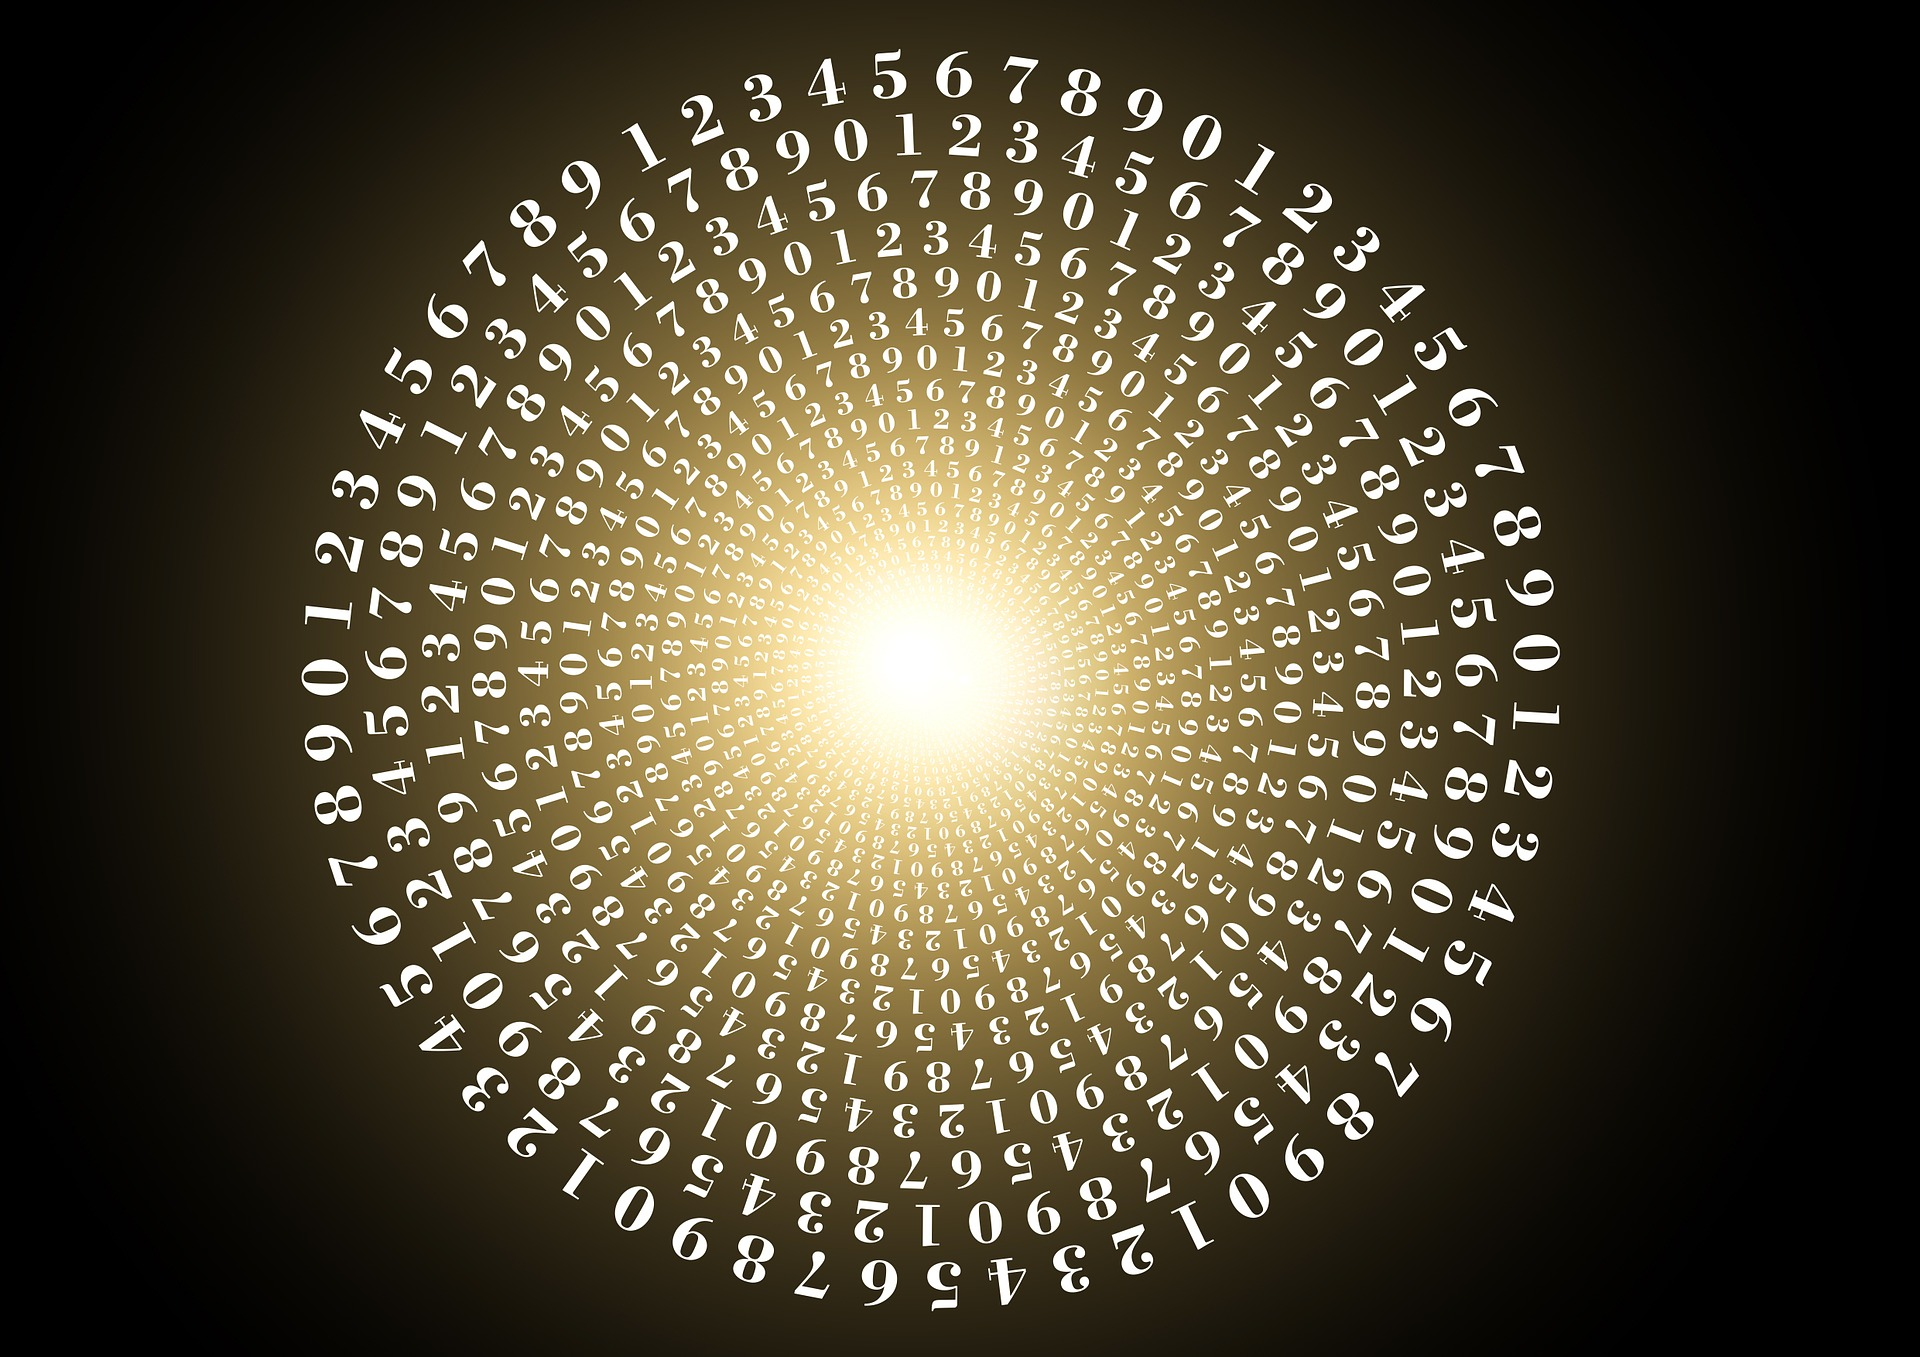 Numbers in a circular pattern